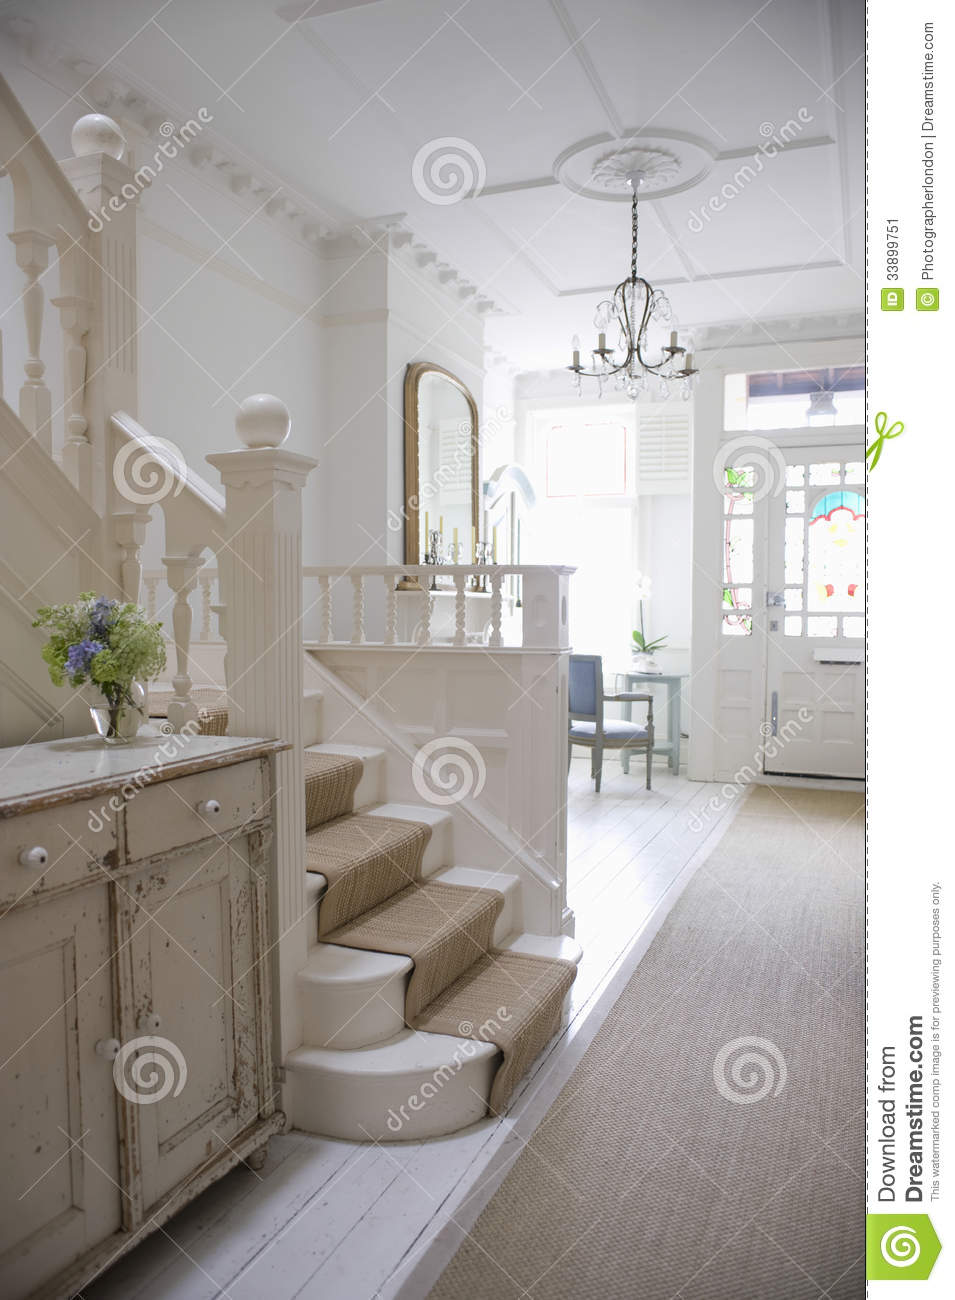 Entry Hall With Stairway Stock Image Image Of Domestic